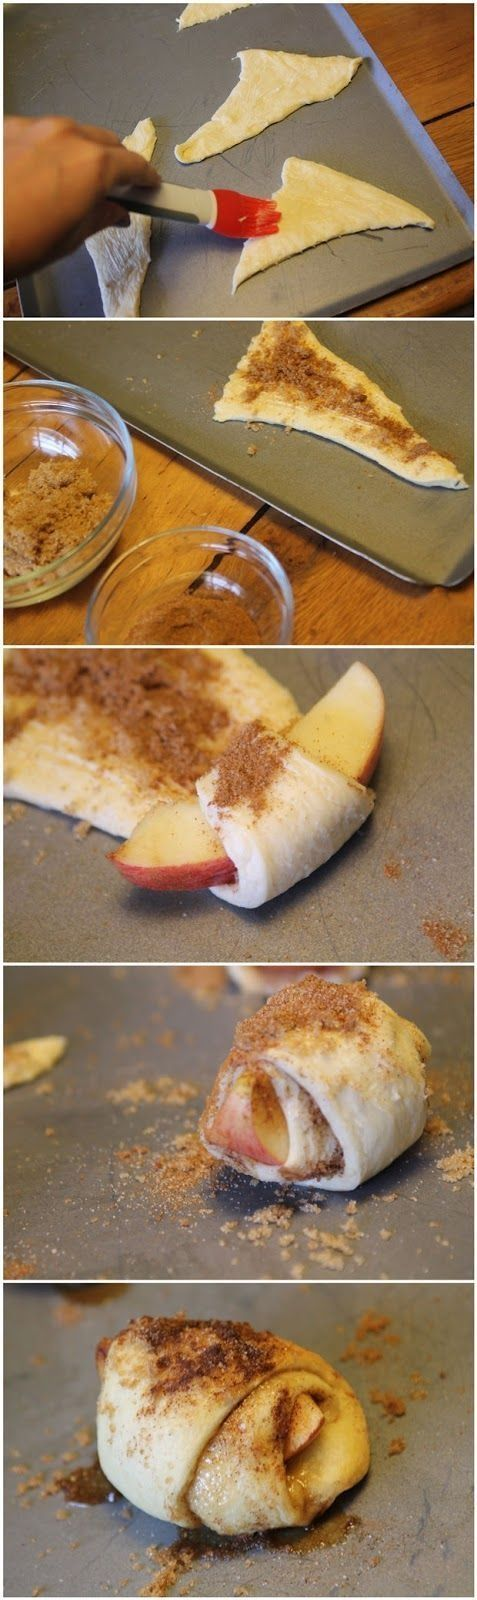 Bite Sized Apple Pies desert baking recipe thanksgiving recipes ingredients instructions desert recipes easy recipes snacks thanksgiving deserts thanksgiving recipes